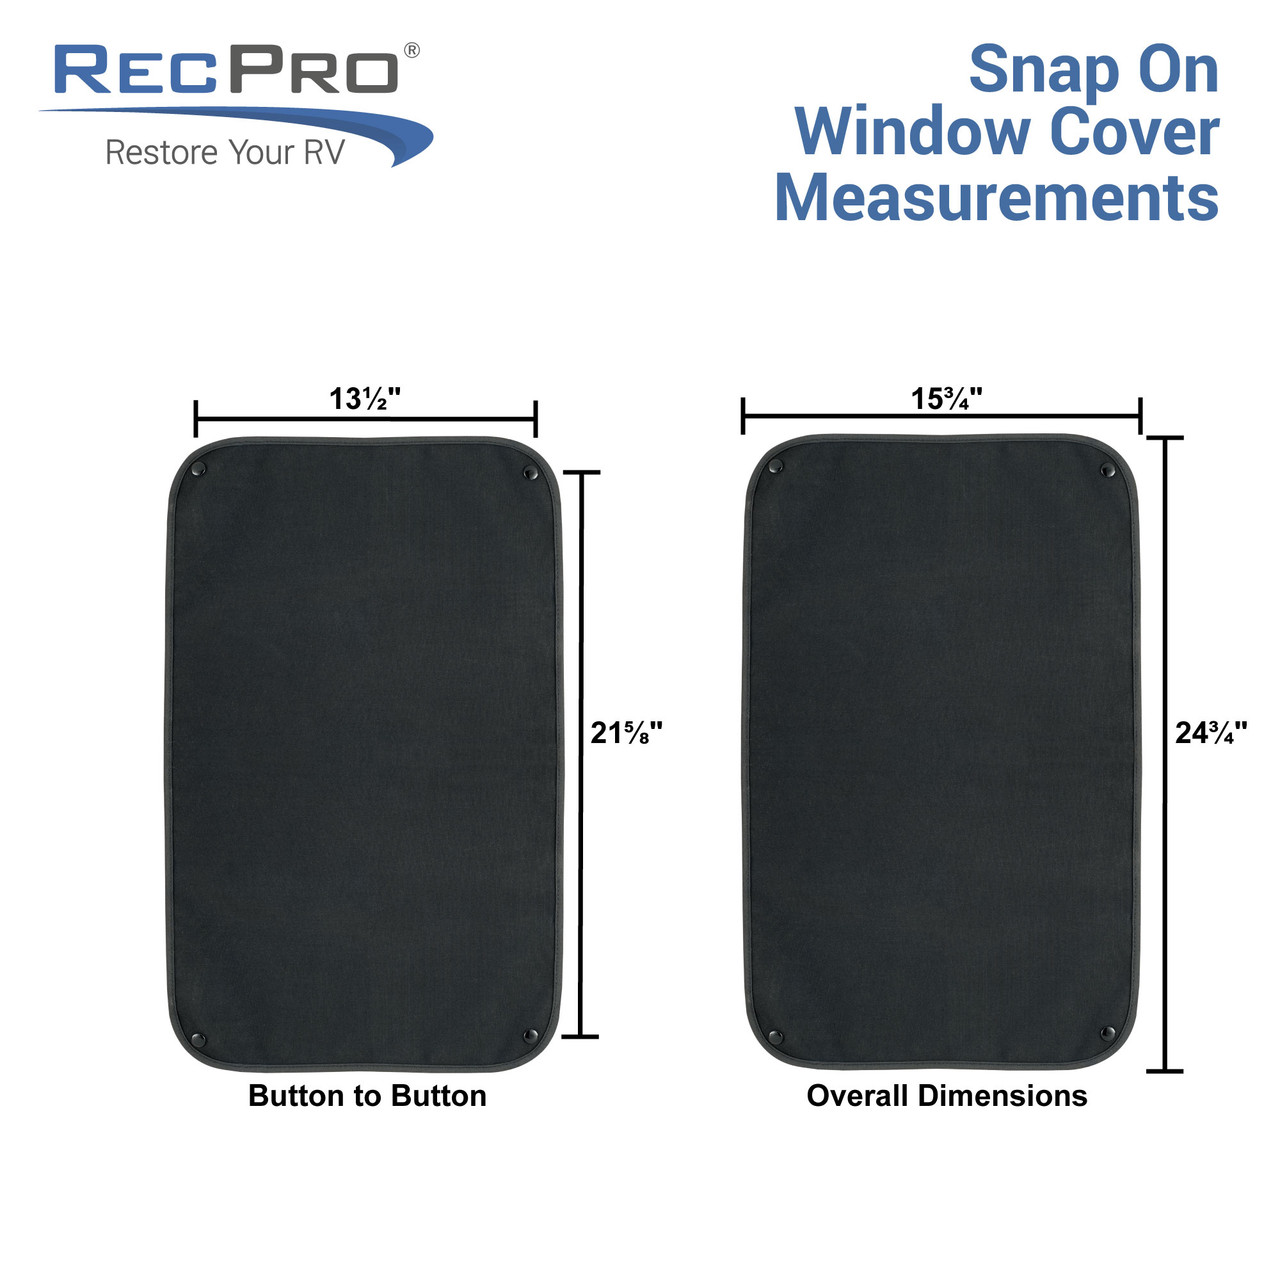 Rv Window Shade For Entry Door With Snaps Black Recpro